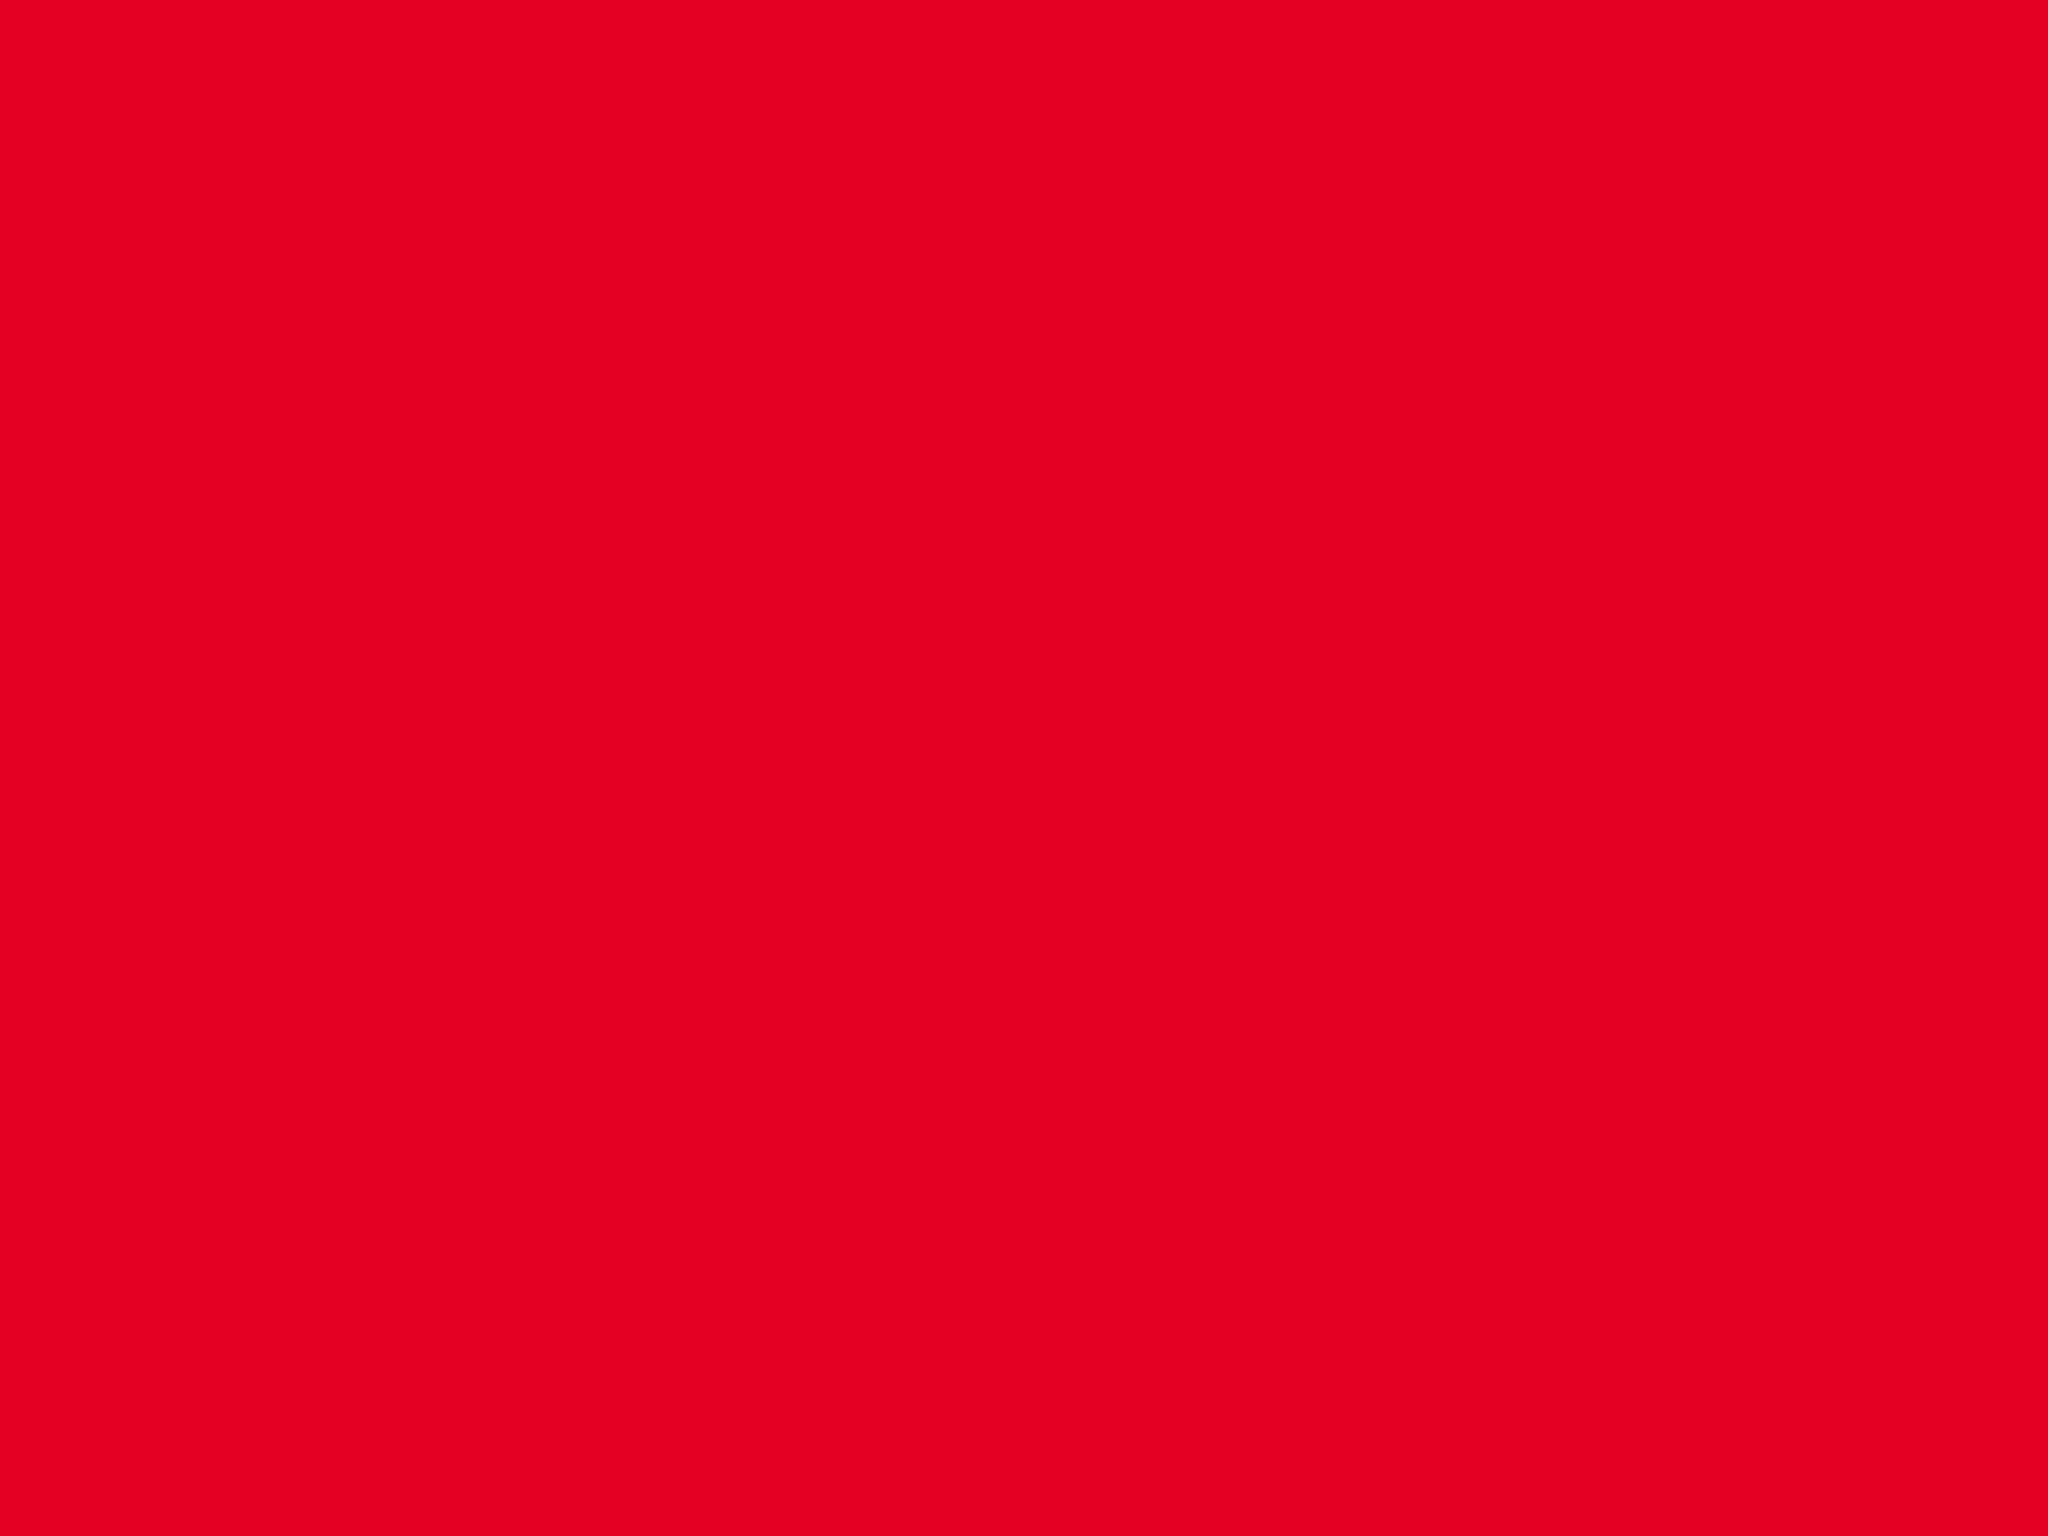 2048x1536 Cadmium Red Solid Color Background